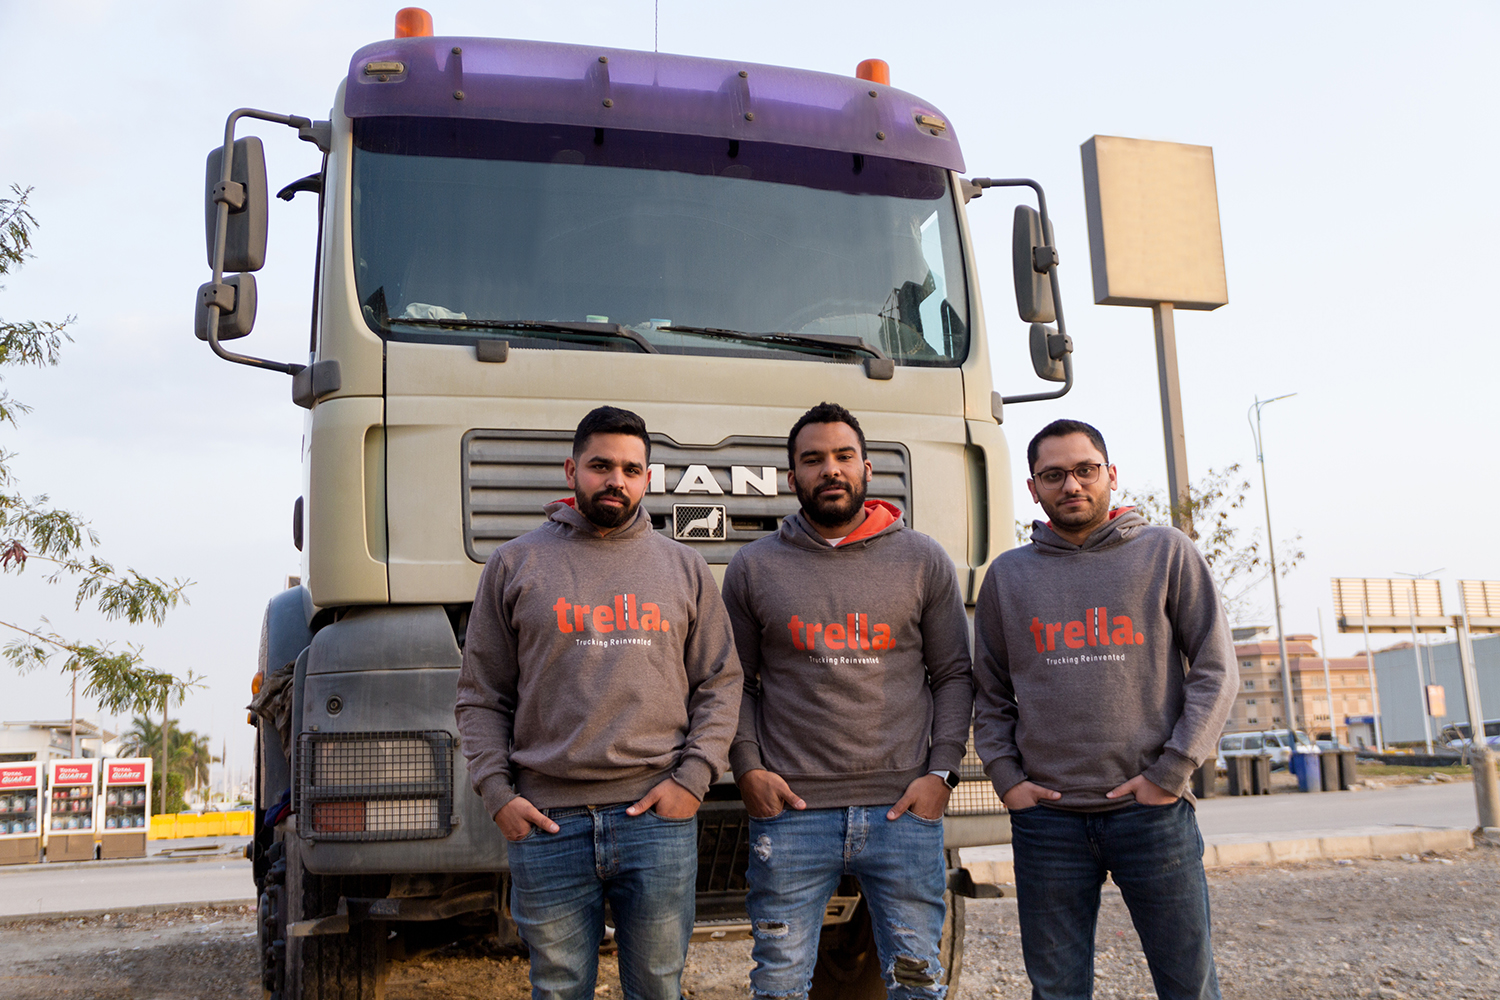 Trella, trucking marketplace, raises $600k+ in pre-seed round led by Algebra Ventures